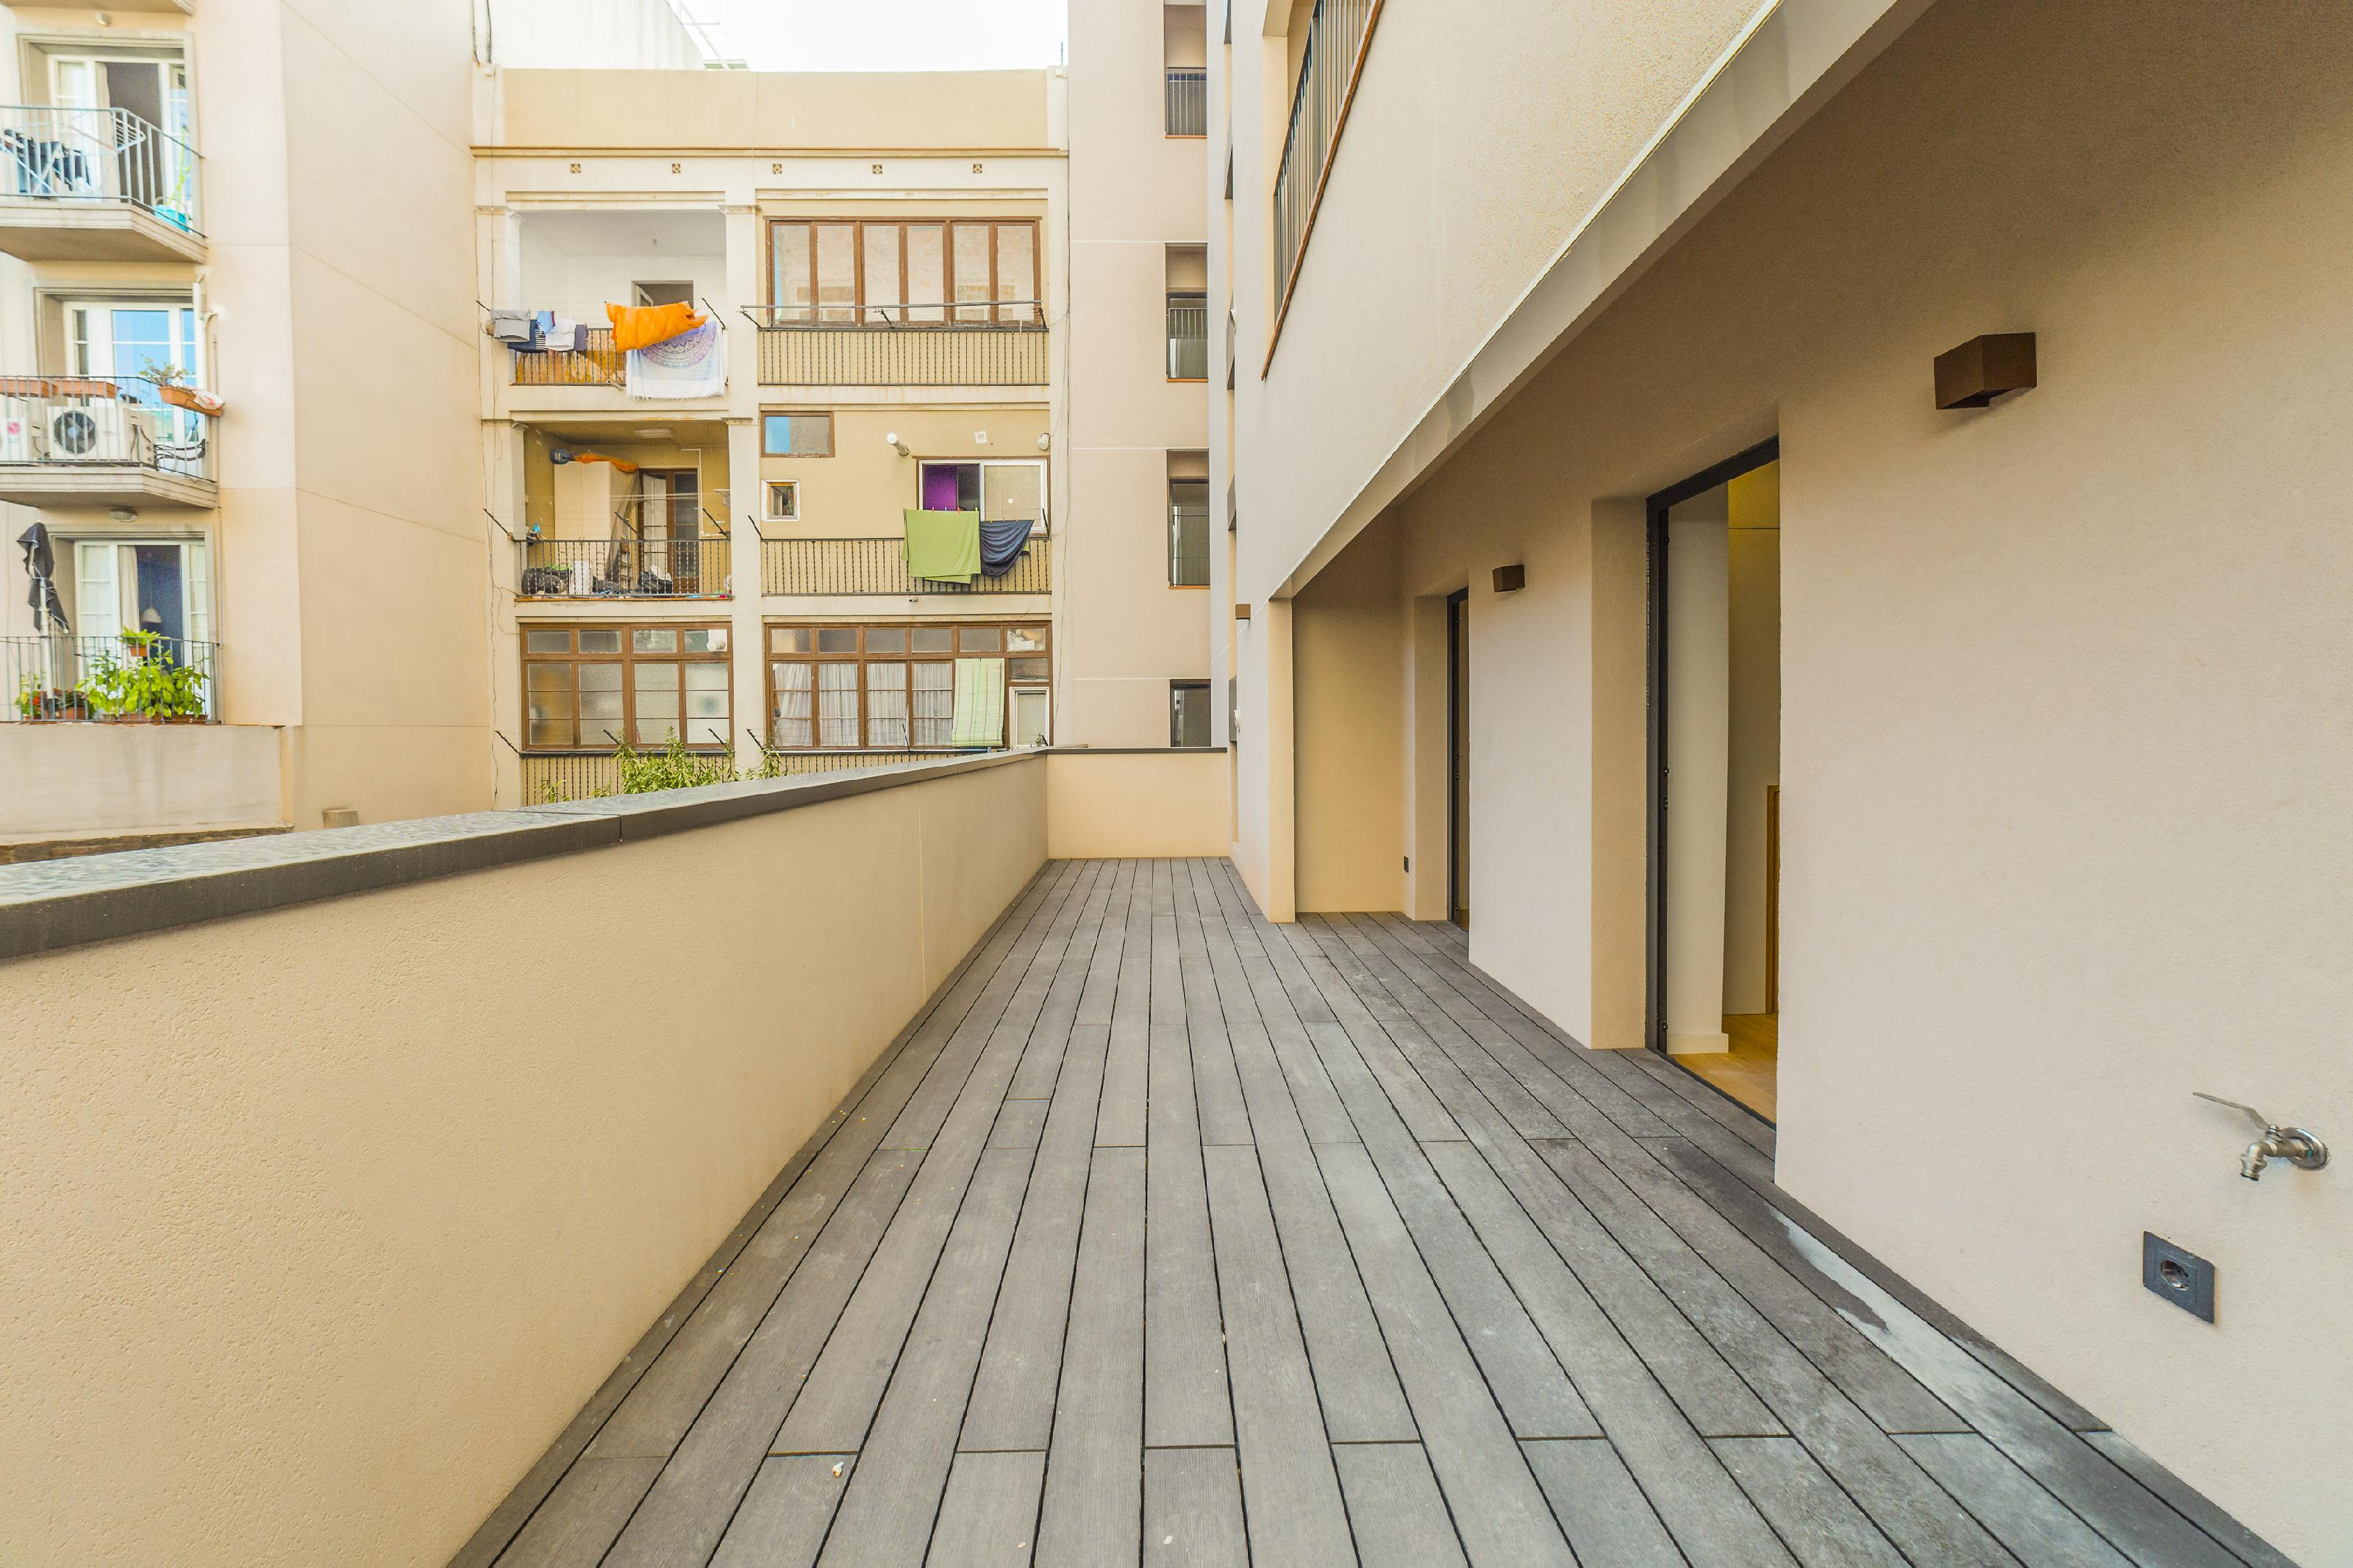 182176 Apartment for sale in Eixample, Old Left Eixample 23